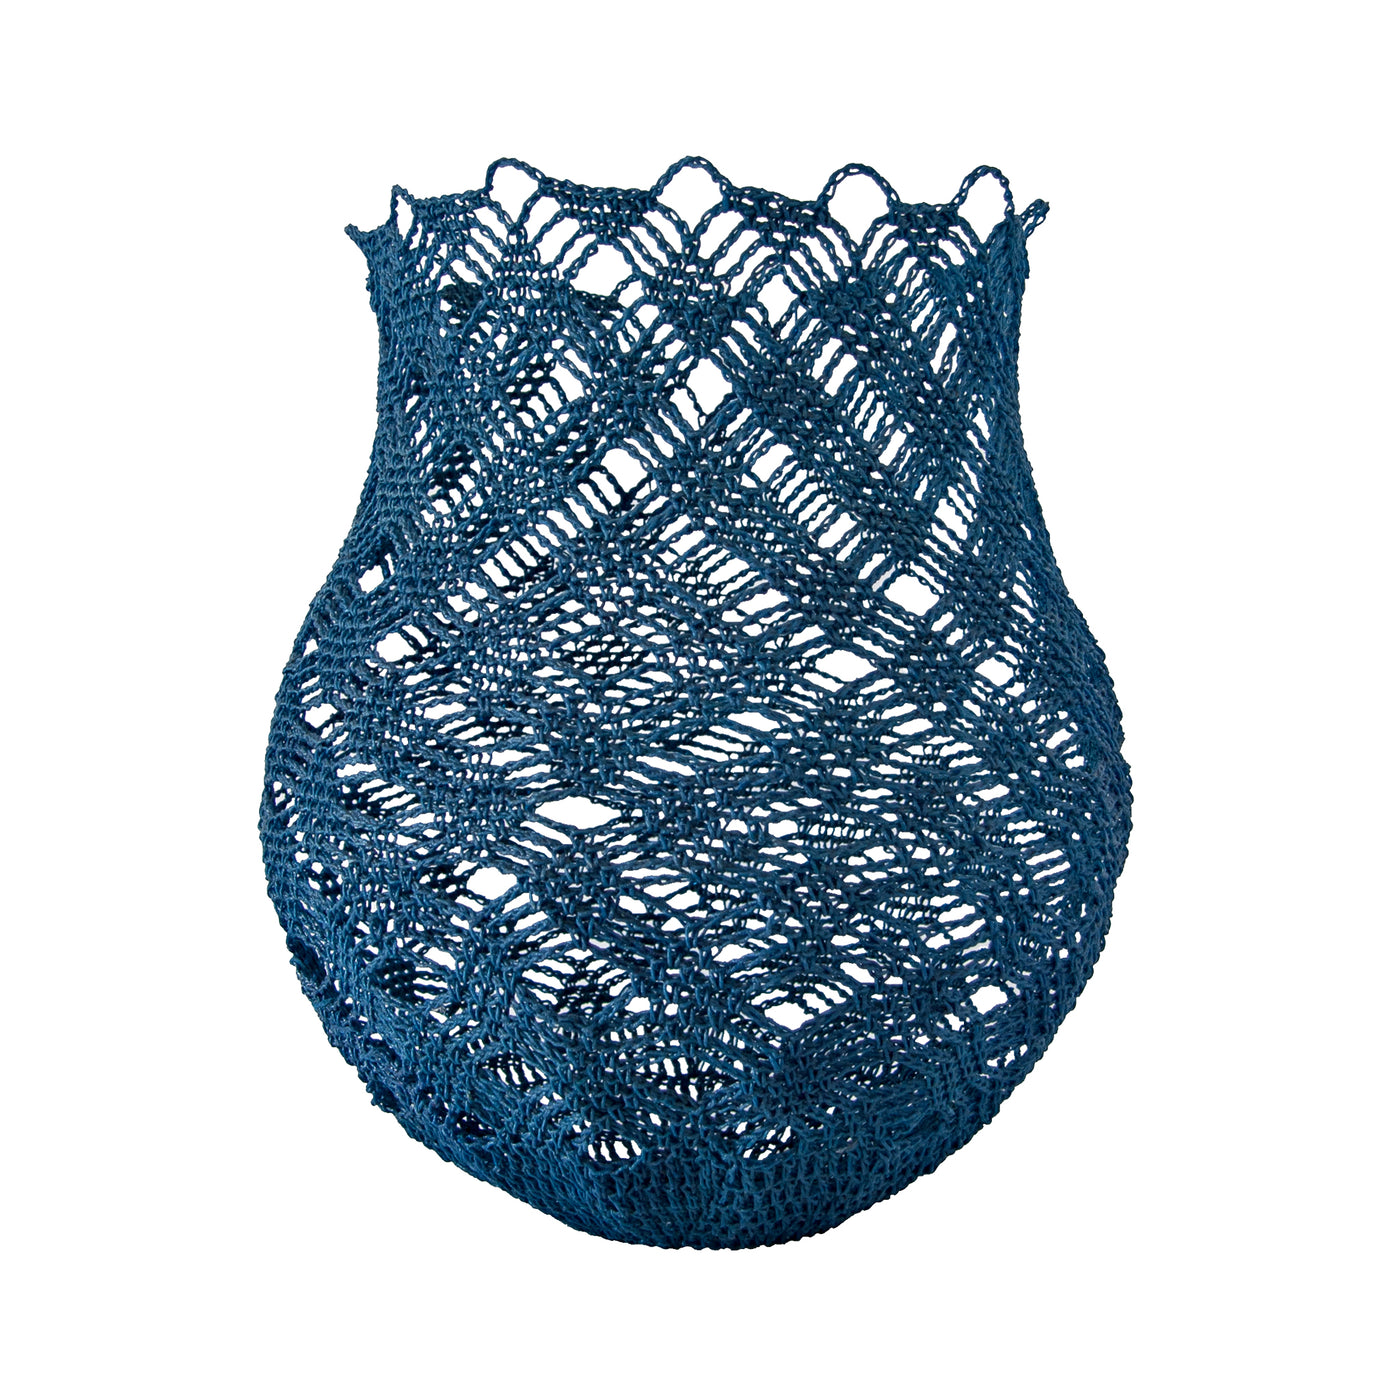 Crochet Basket (large | indigo blue) by Safari Fusion www.safarifusion.com.au